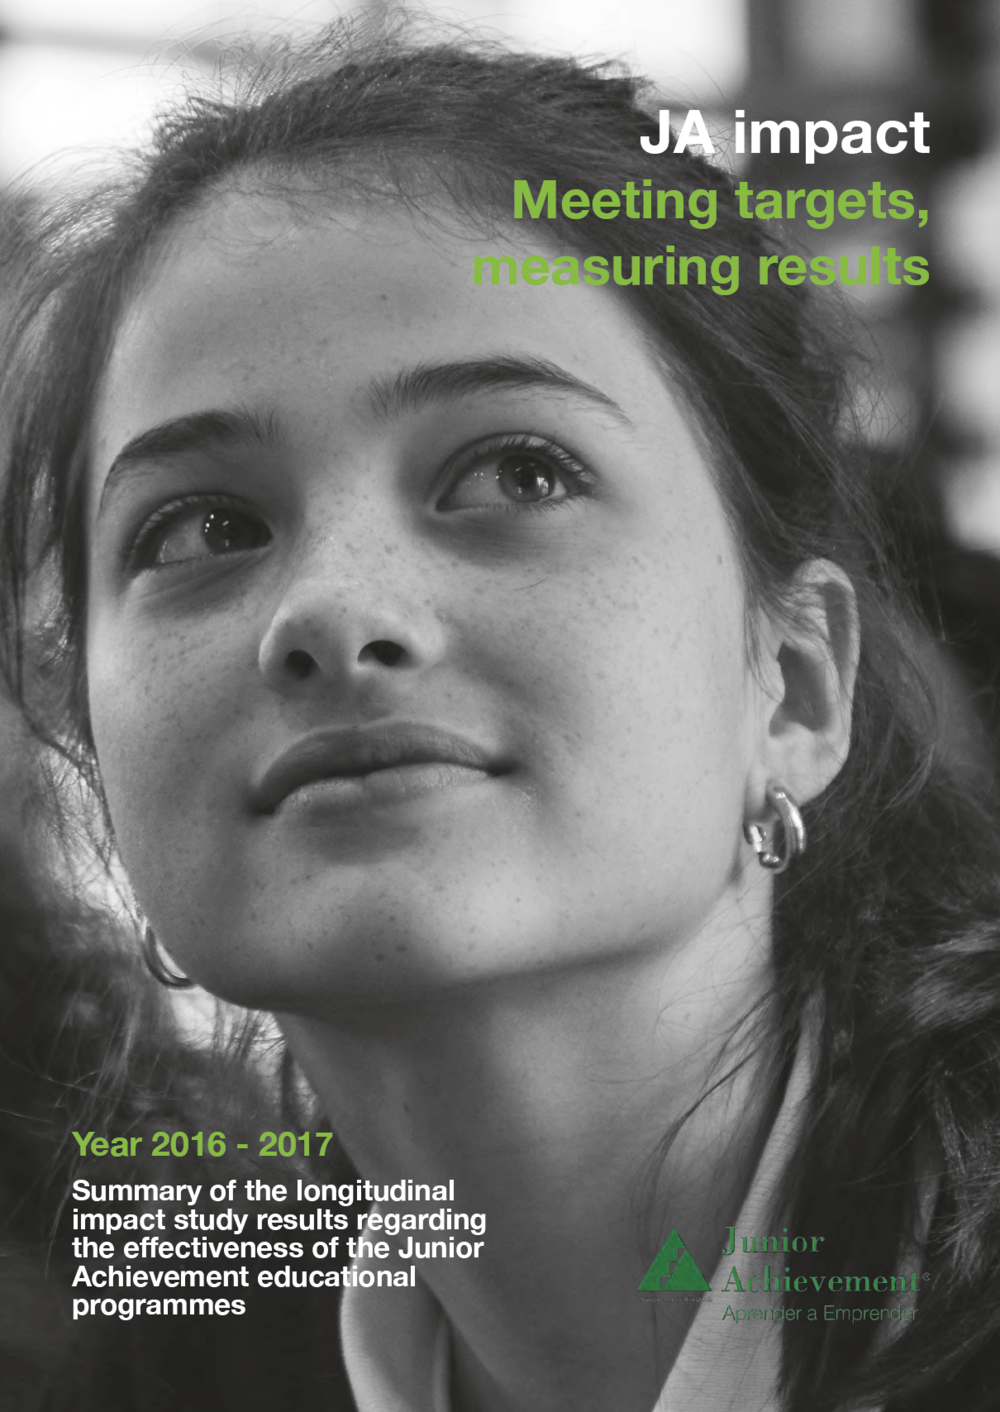 31-JA impact-Meeting targets-measuring results-cover.png